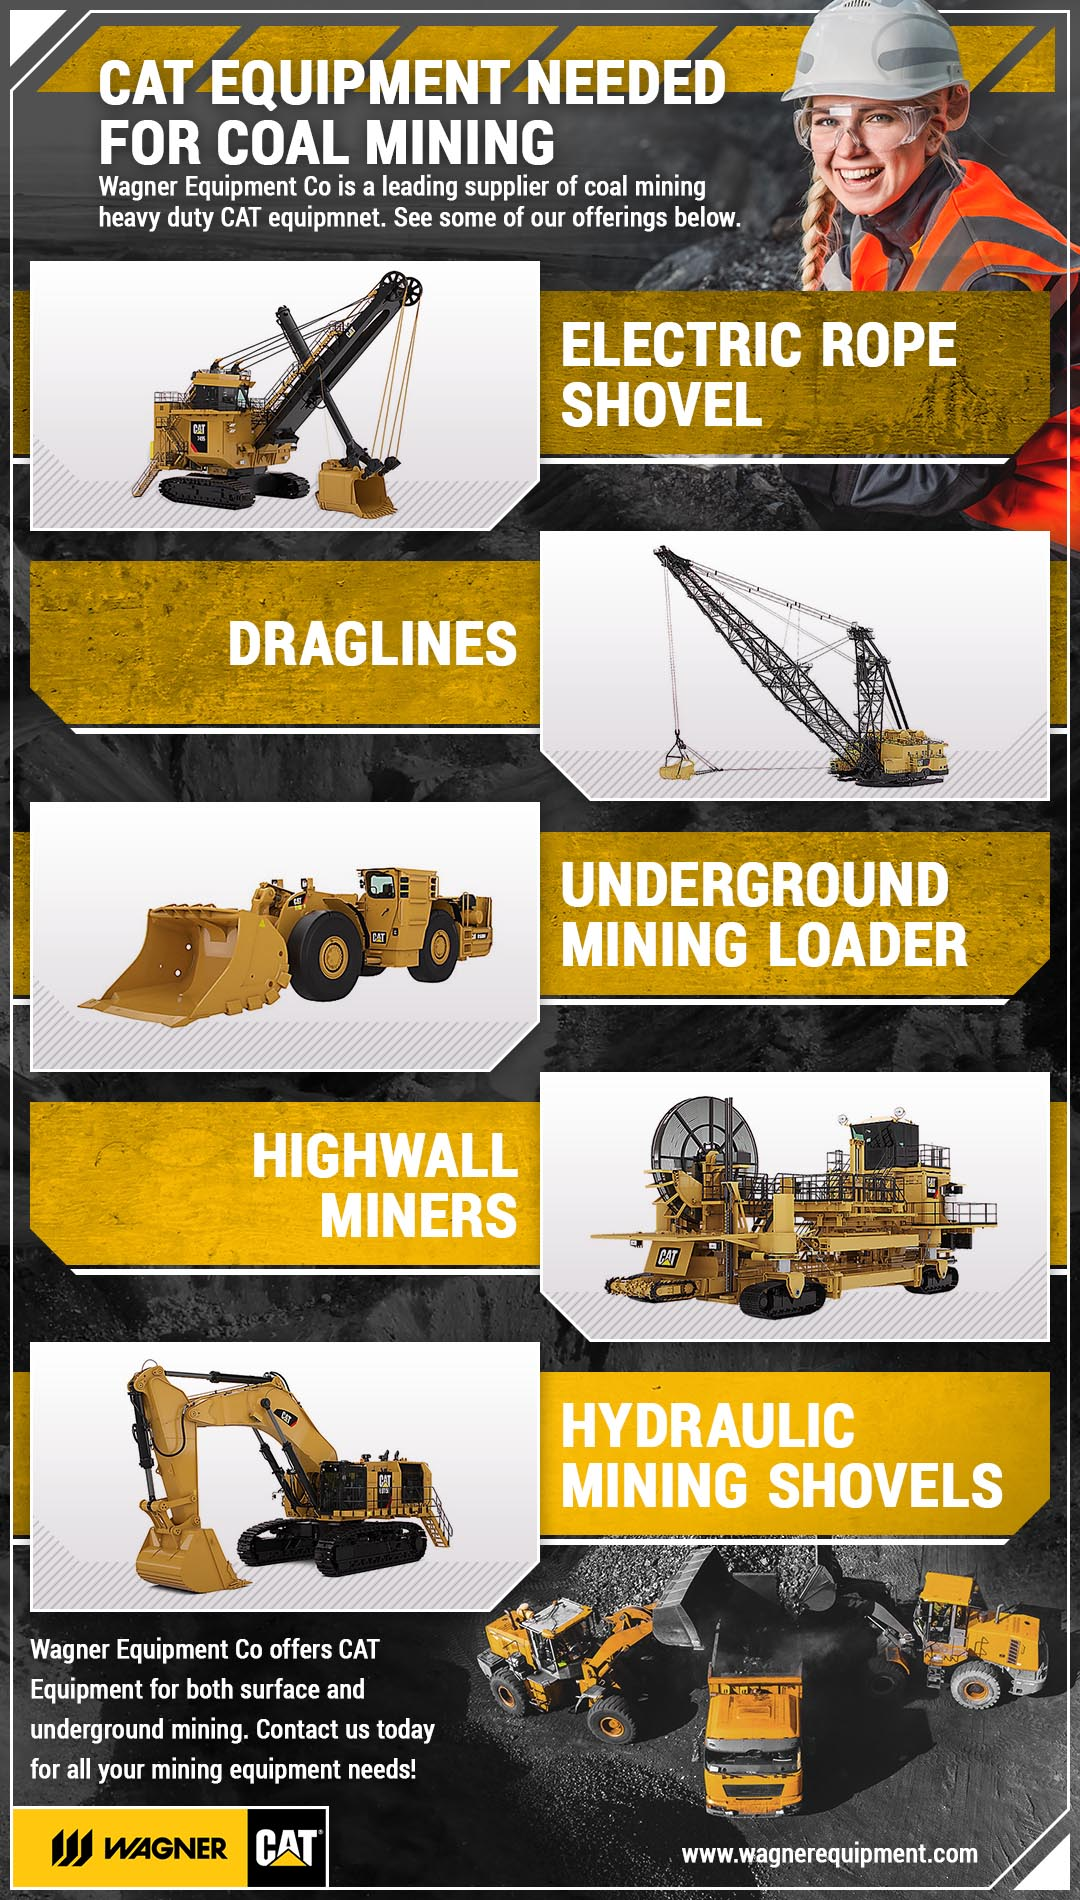 CAT Equipment Needed for Coal Mining Infographic 2